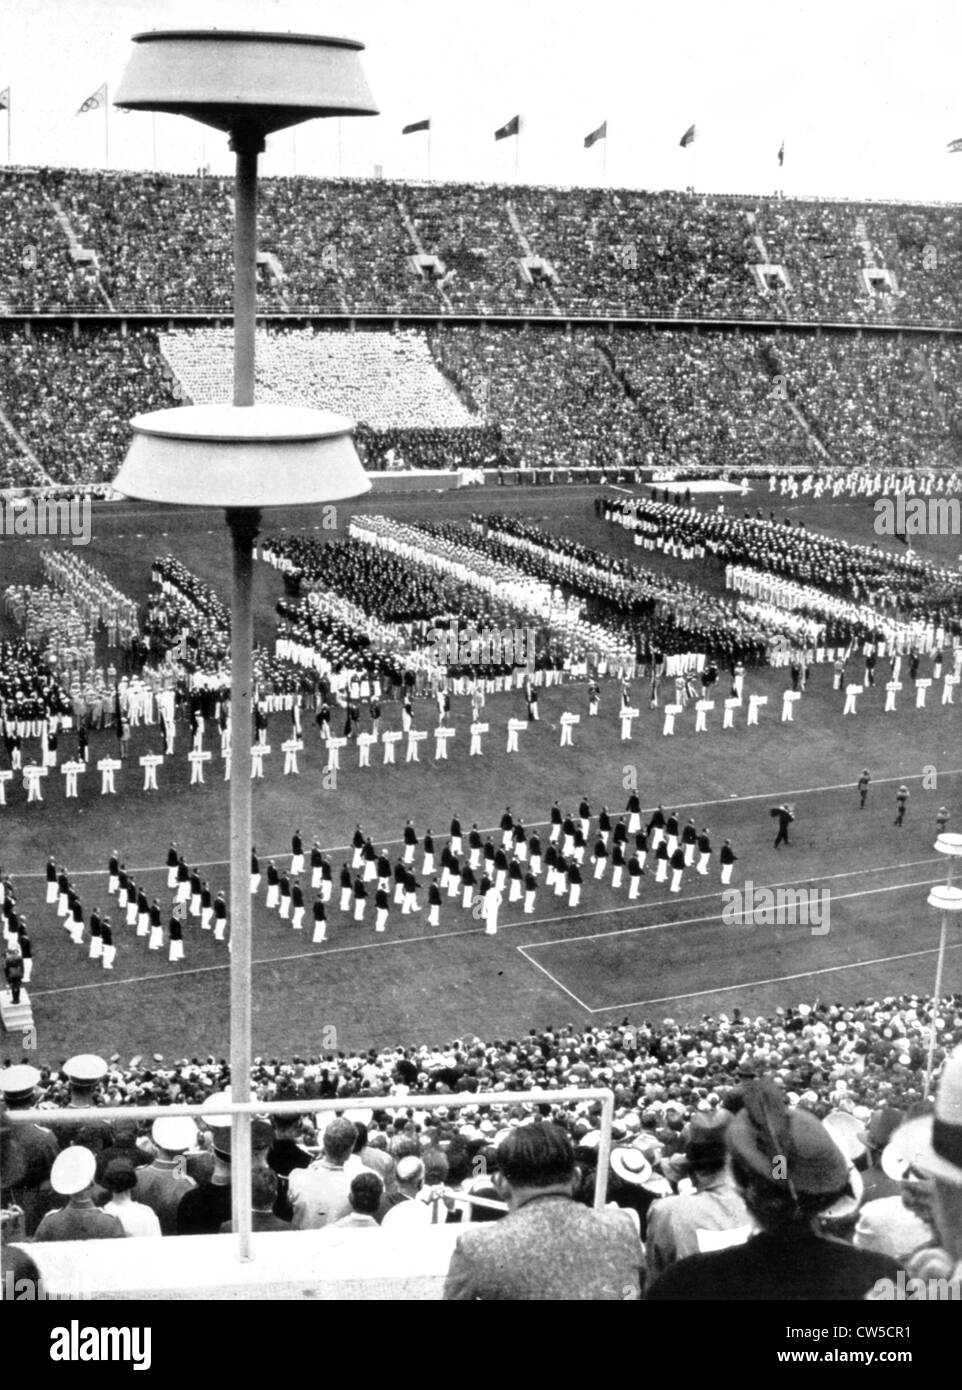 Berlin Olympic Games Berlin Olympic Games Nations parade on the opening day. In the foreground, the Swiss team - Stock Image